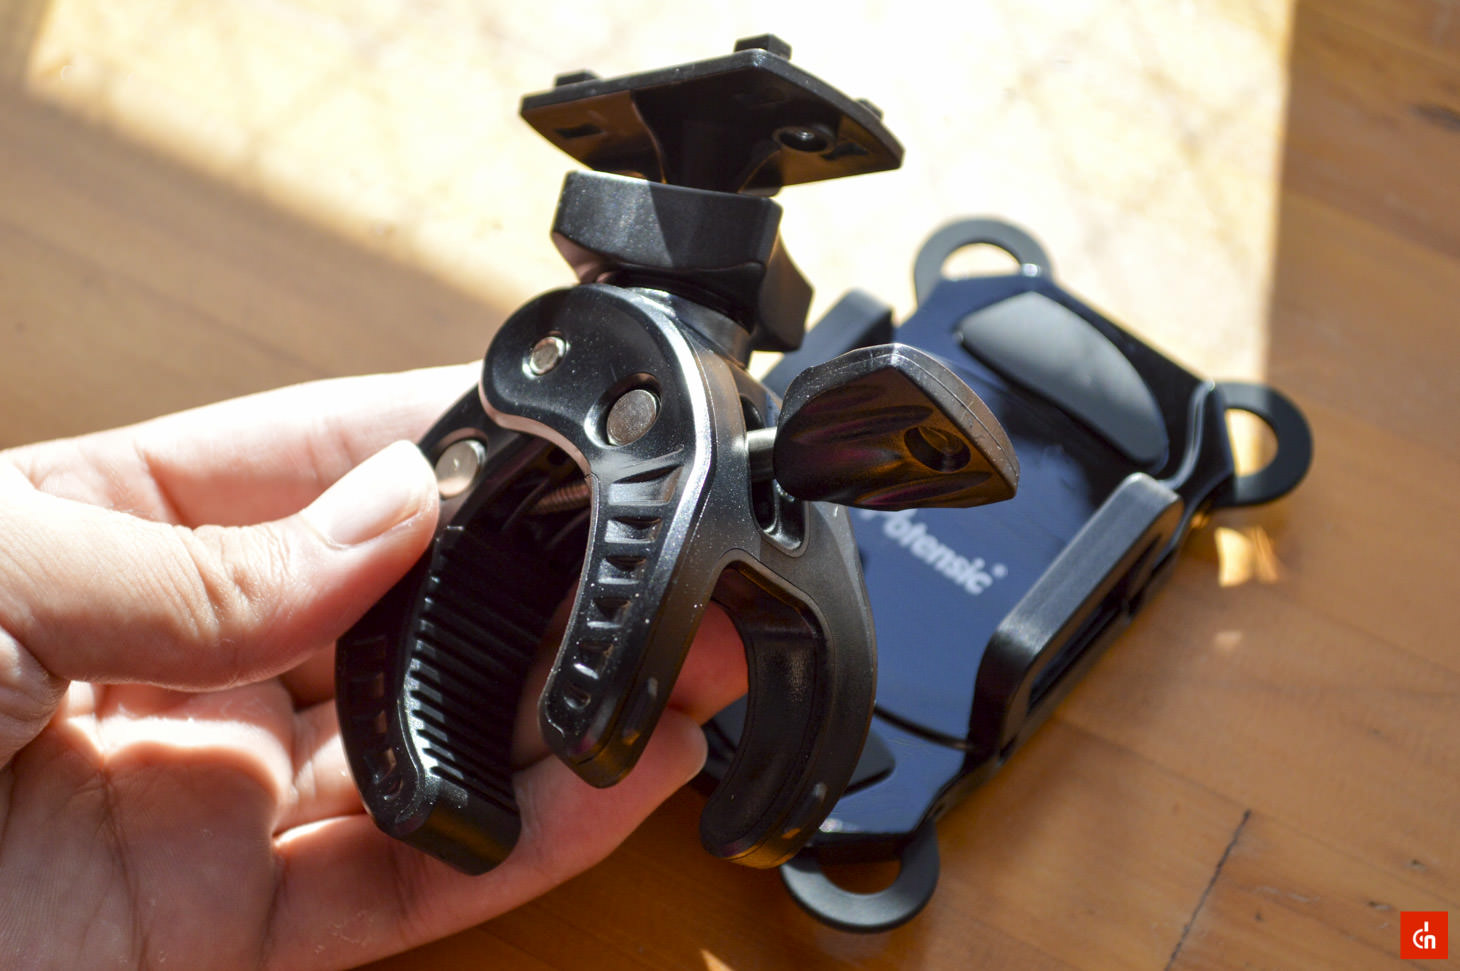 004_20161001_potensic-cycle-holder